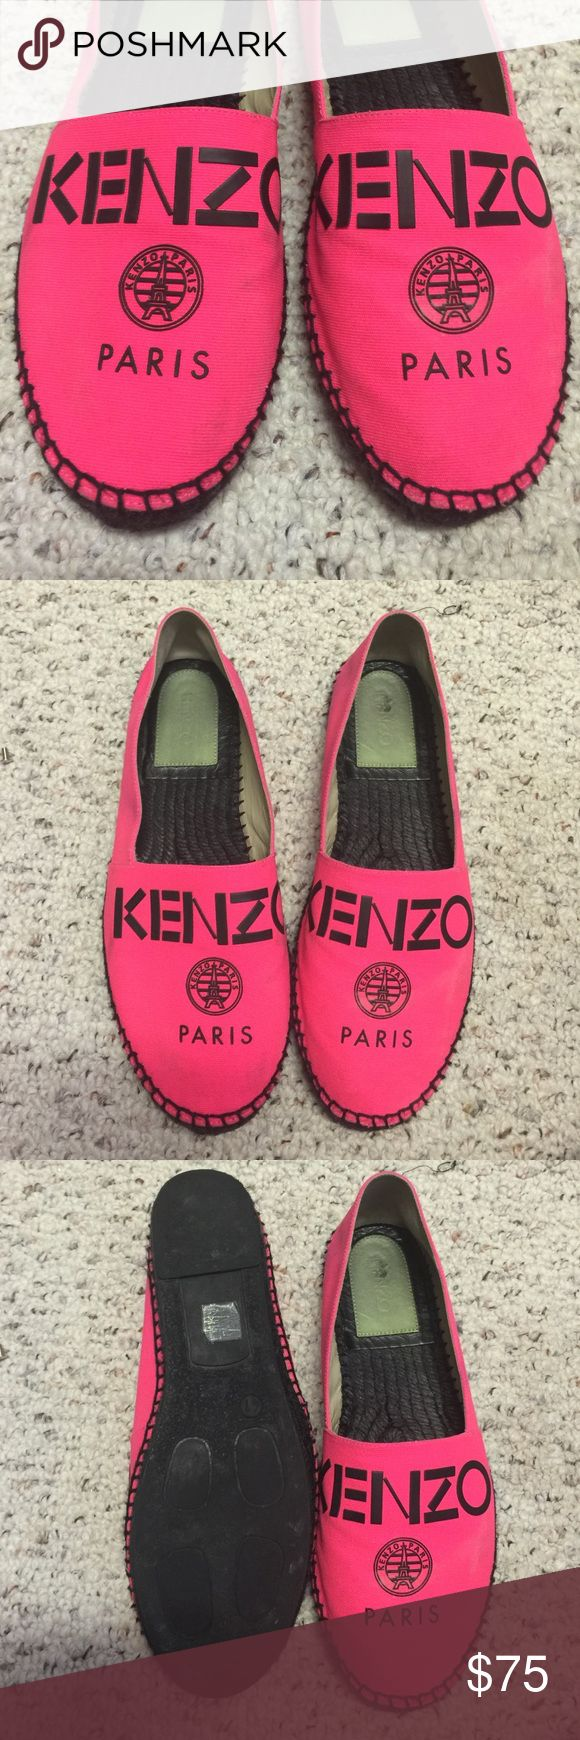 Kenzo Paris hot pink espadrilles flat 41 size 9 I bought this from a trip to Paris, wore it few times, it's a bit dirty but not too much, I paid $175 for it . It's size 41, but I usually wear size 9-9.5 and it fits perfect. Kenzo Shoes Espadrilles